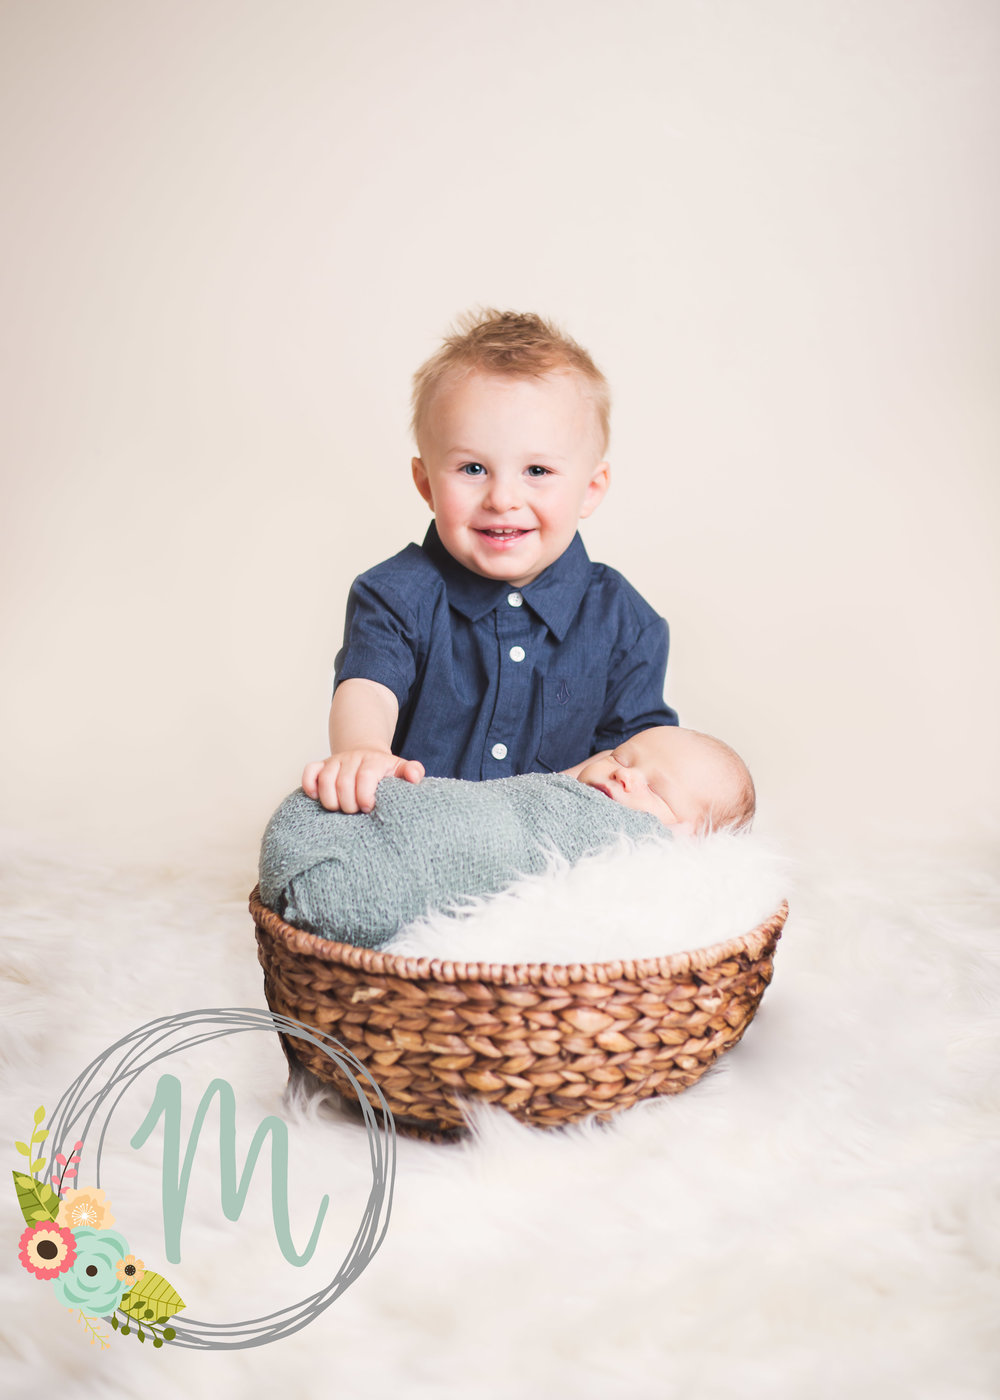 Utah Newborn Photography - Mobie Photo, Lehi, Utah